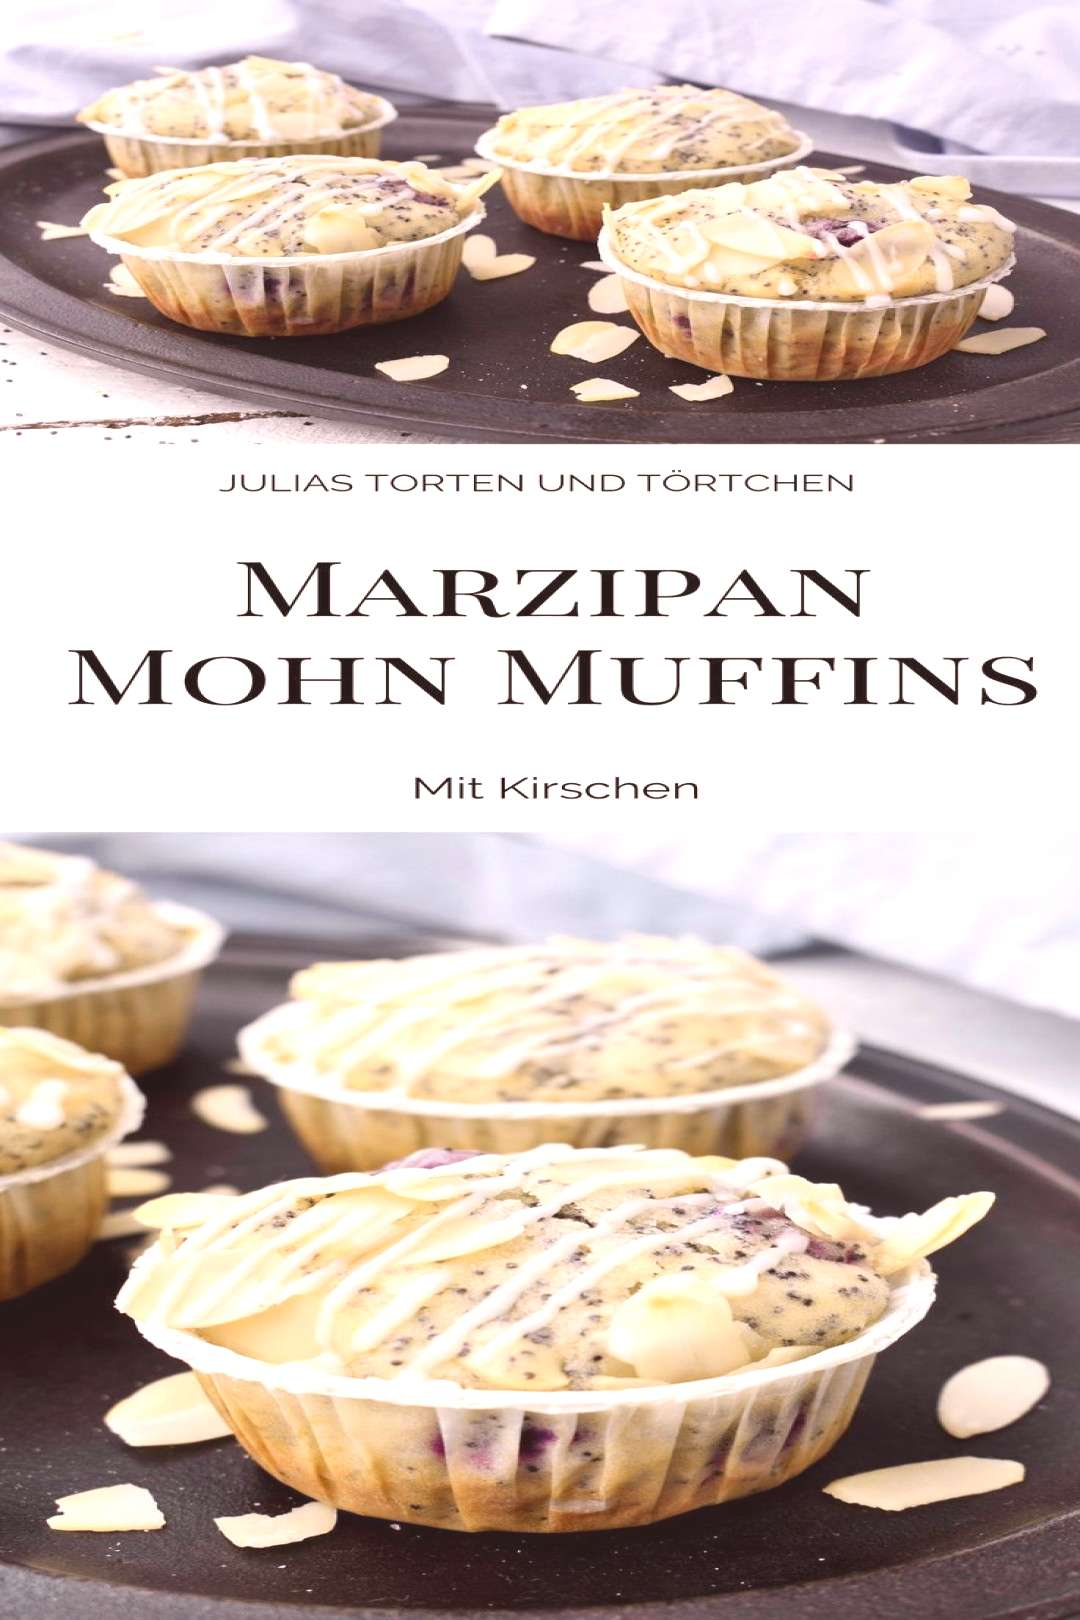 Marzipan poppy seed muffins with cherries#cherries